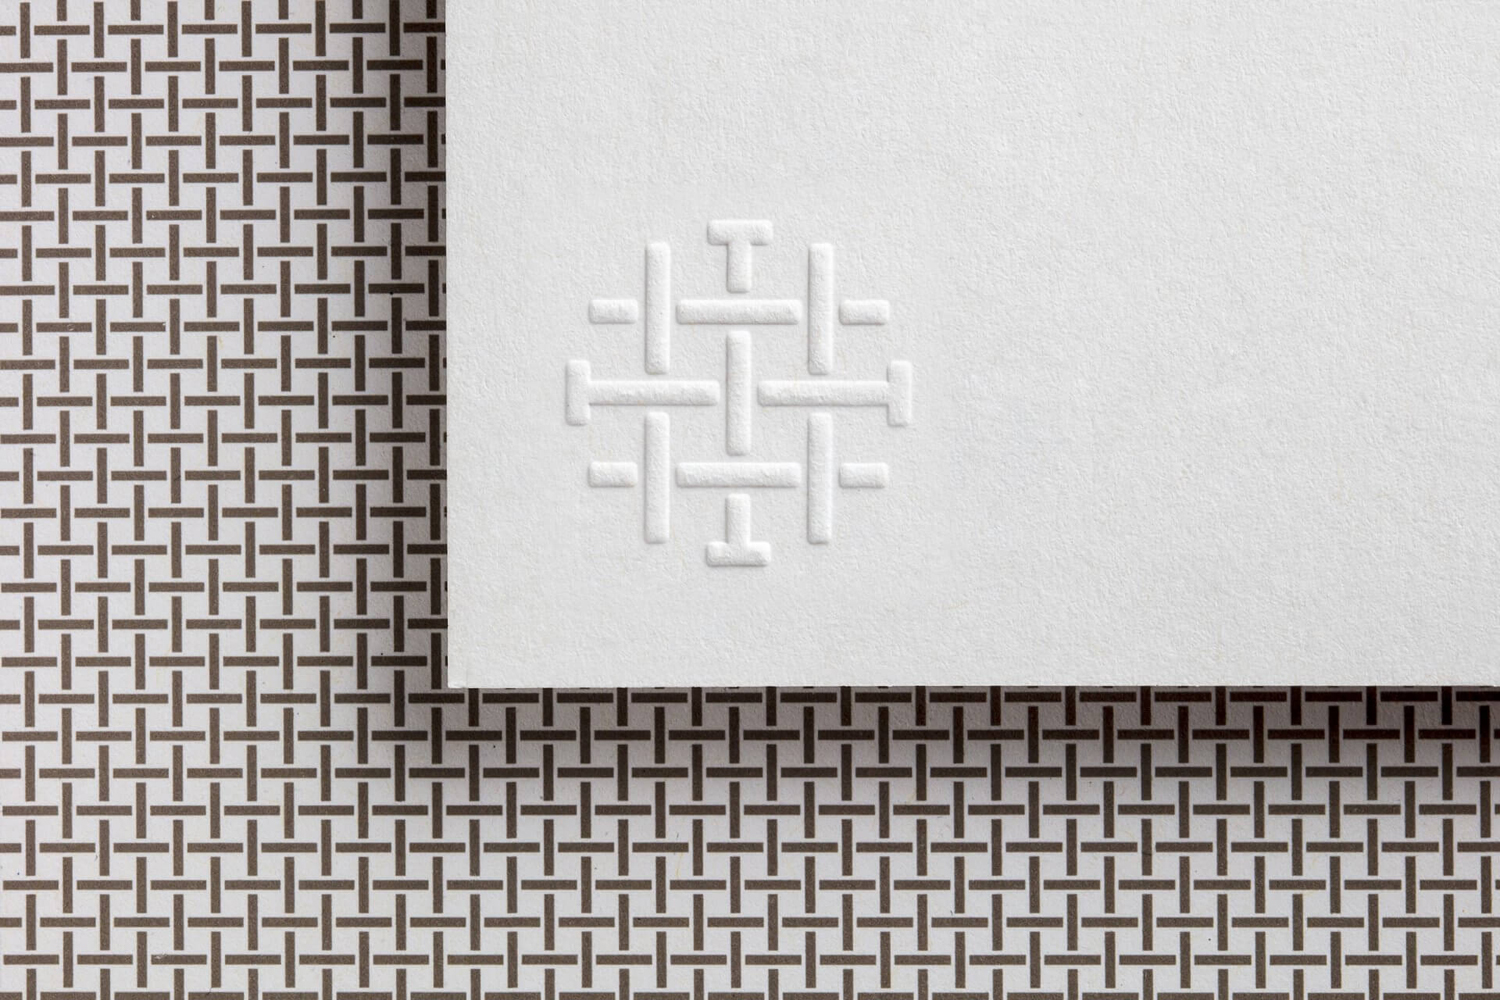 Brand identity and blind embossed business cards designed by Mucho for Spanish 5-star hotel Sant Francesc.